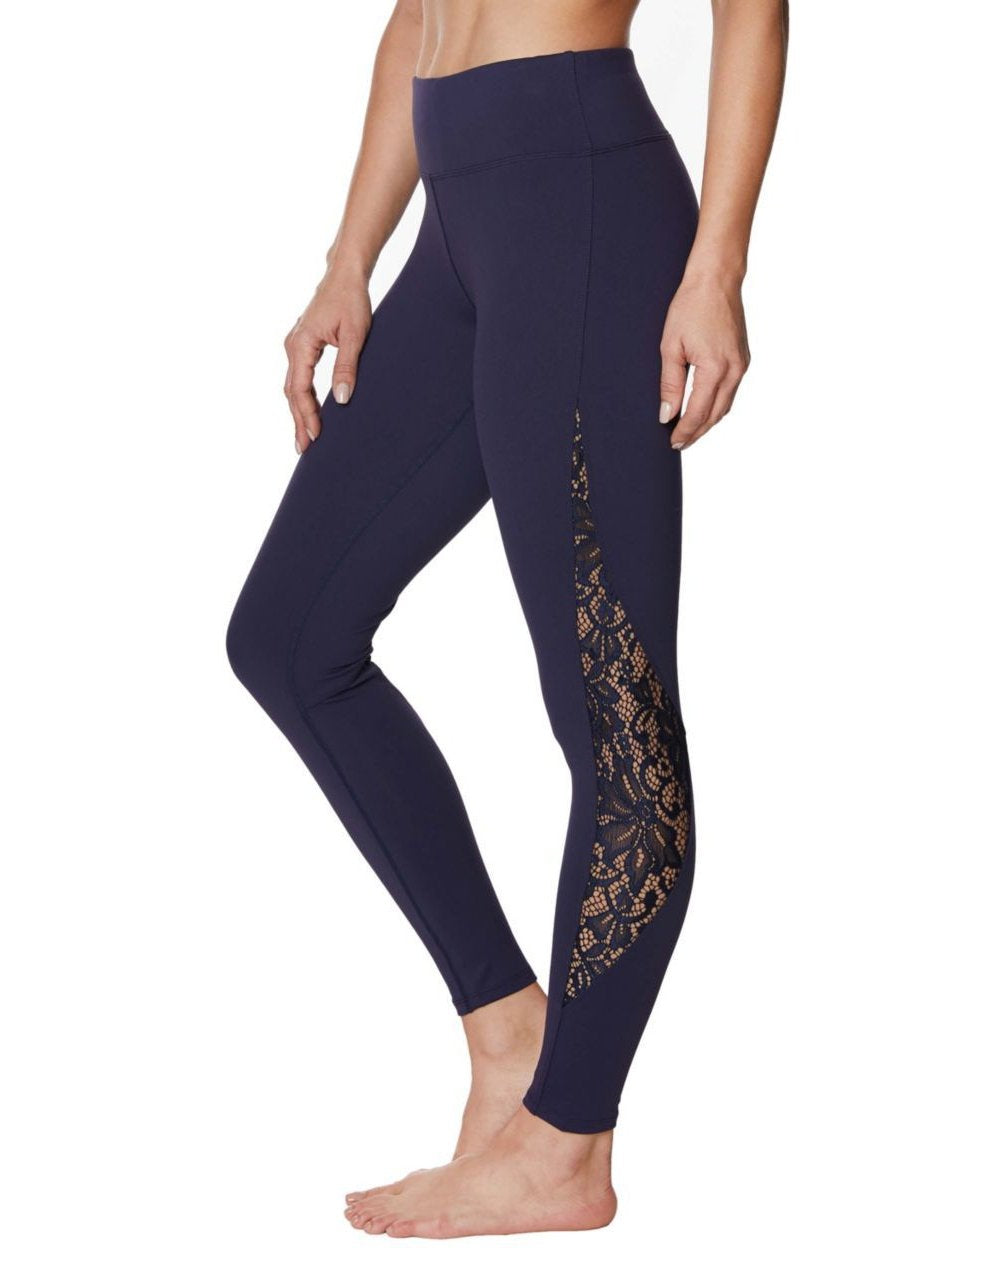 LOVELY LACE INSET LEGGINGS NAVY - APPAREL - Betsey Johnson